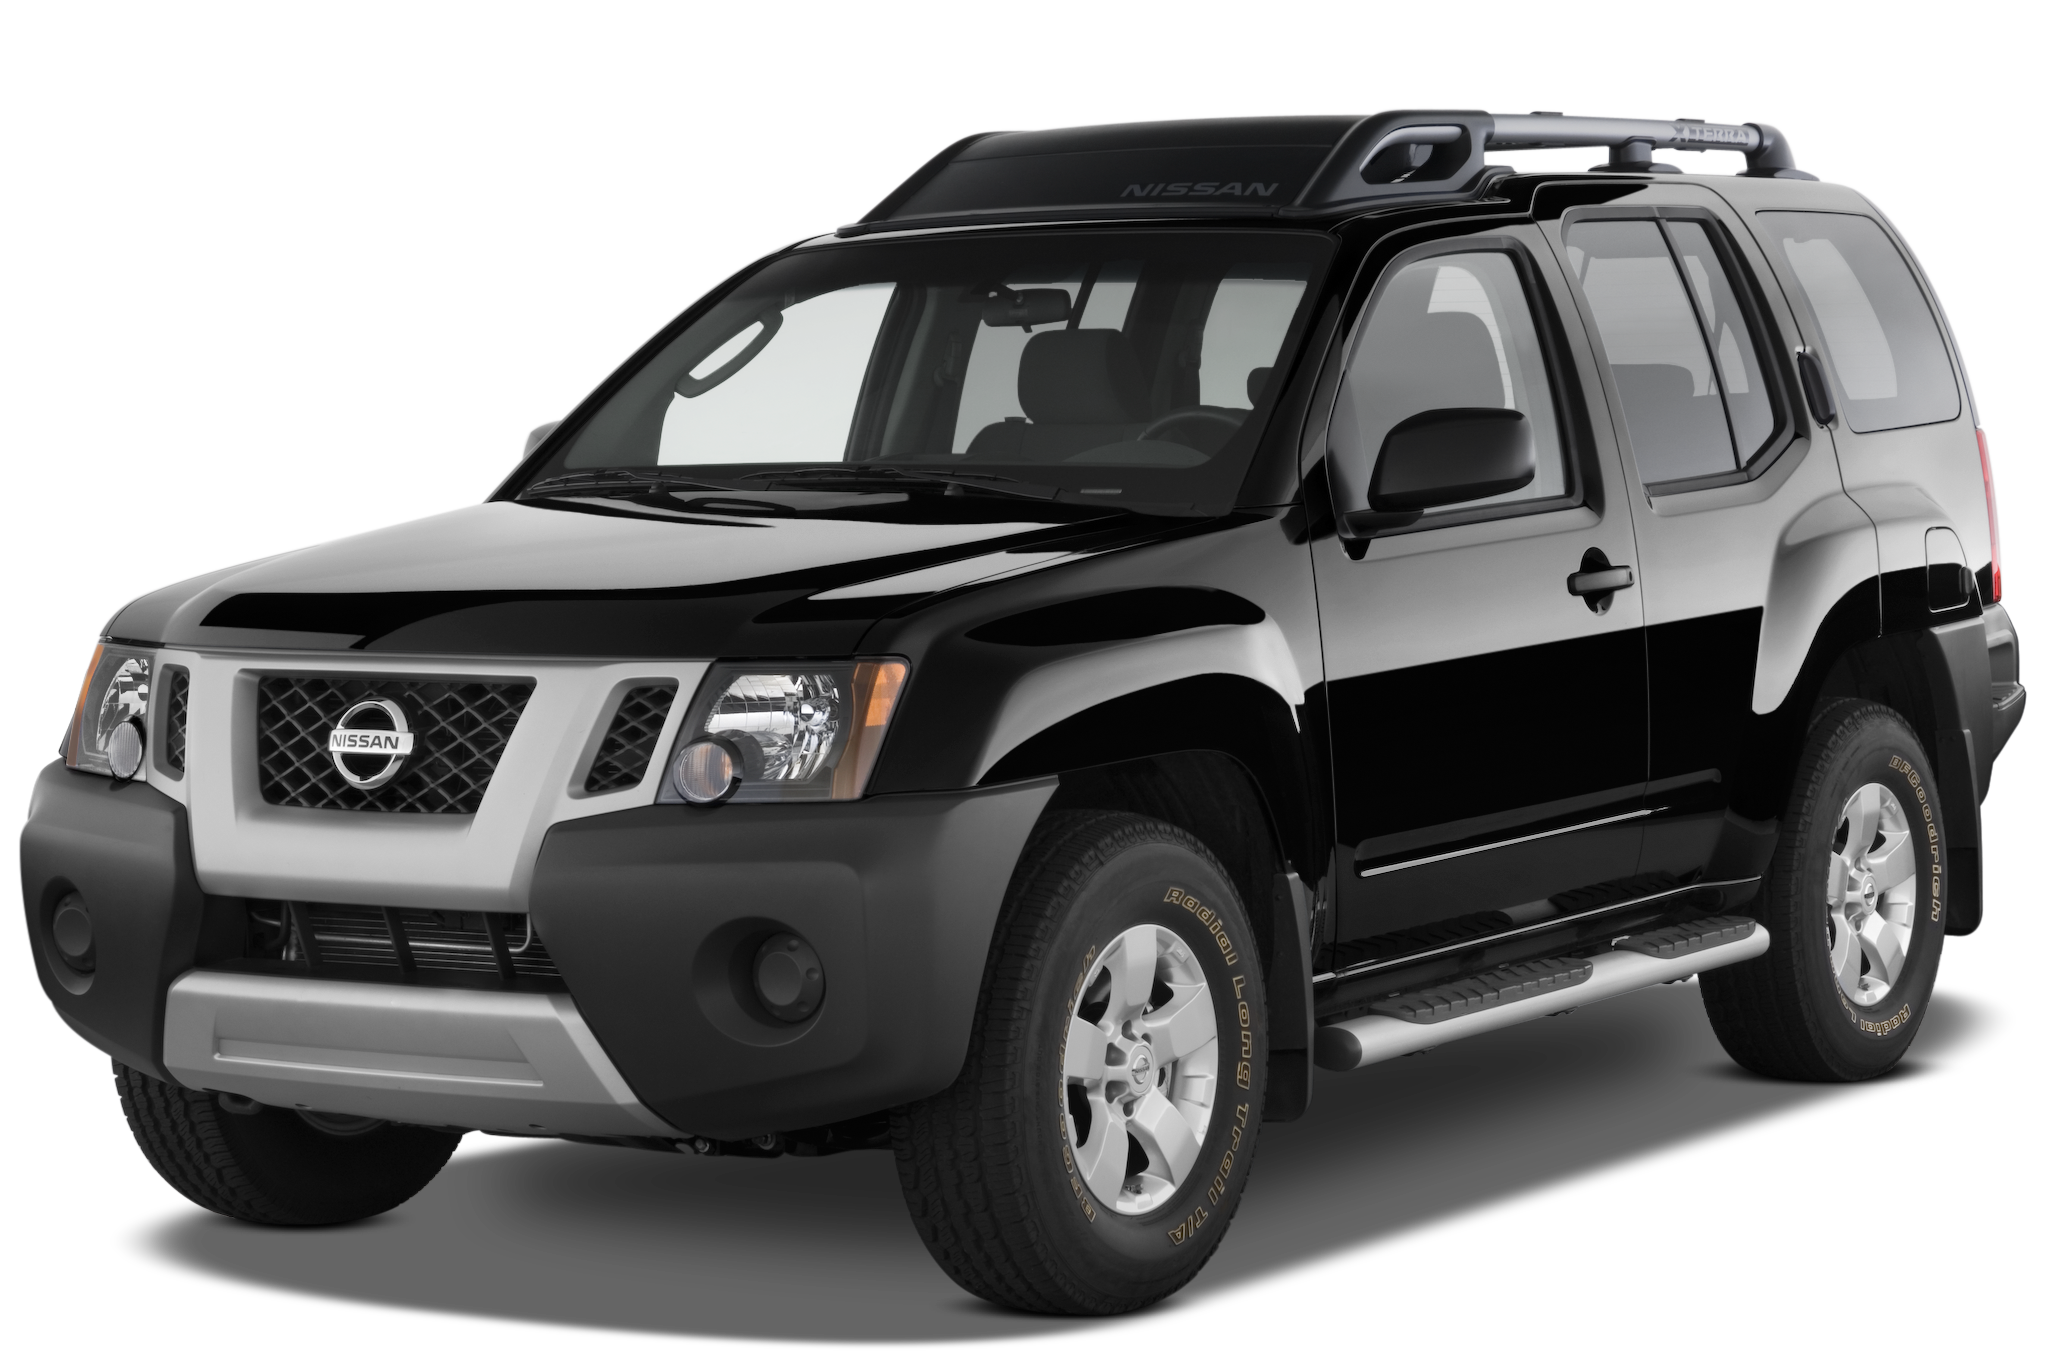 much wagon insure models station how x review to nissan is it suv parkers trail